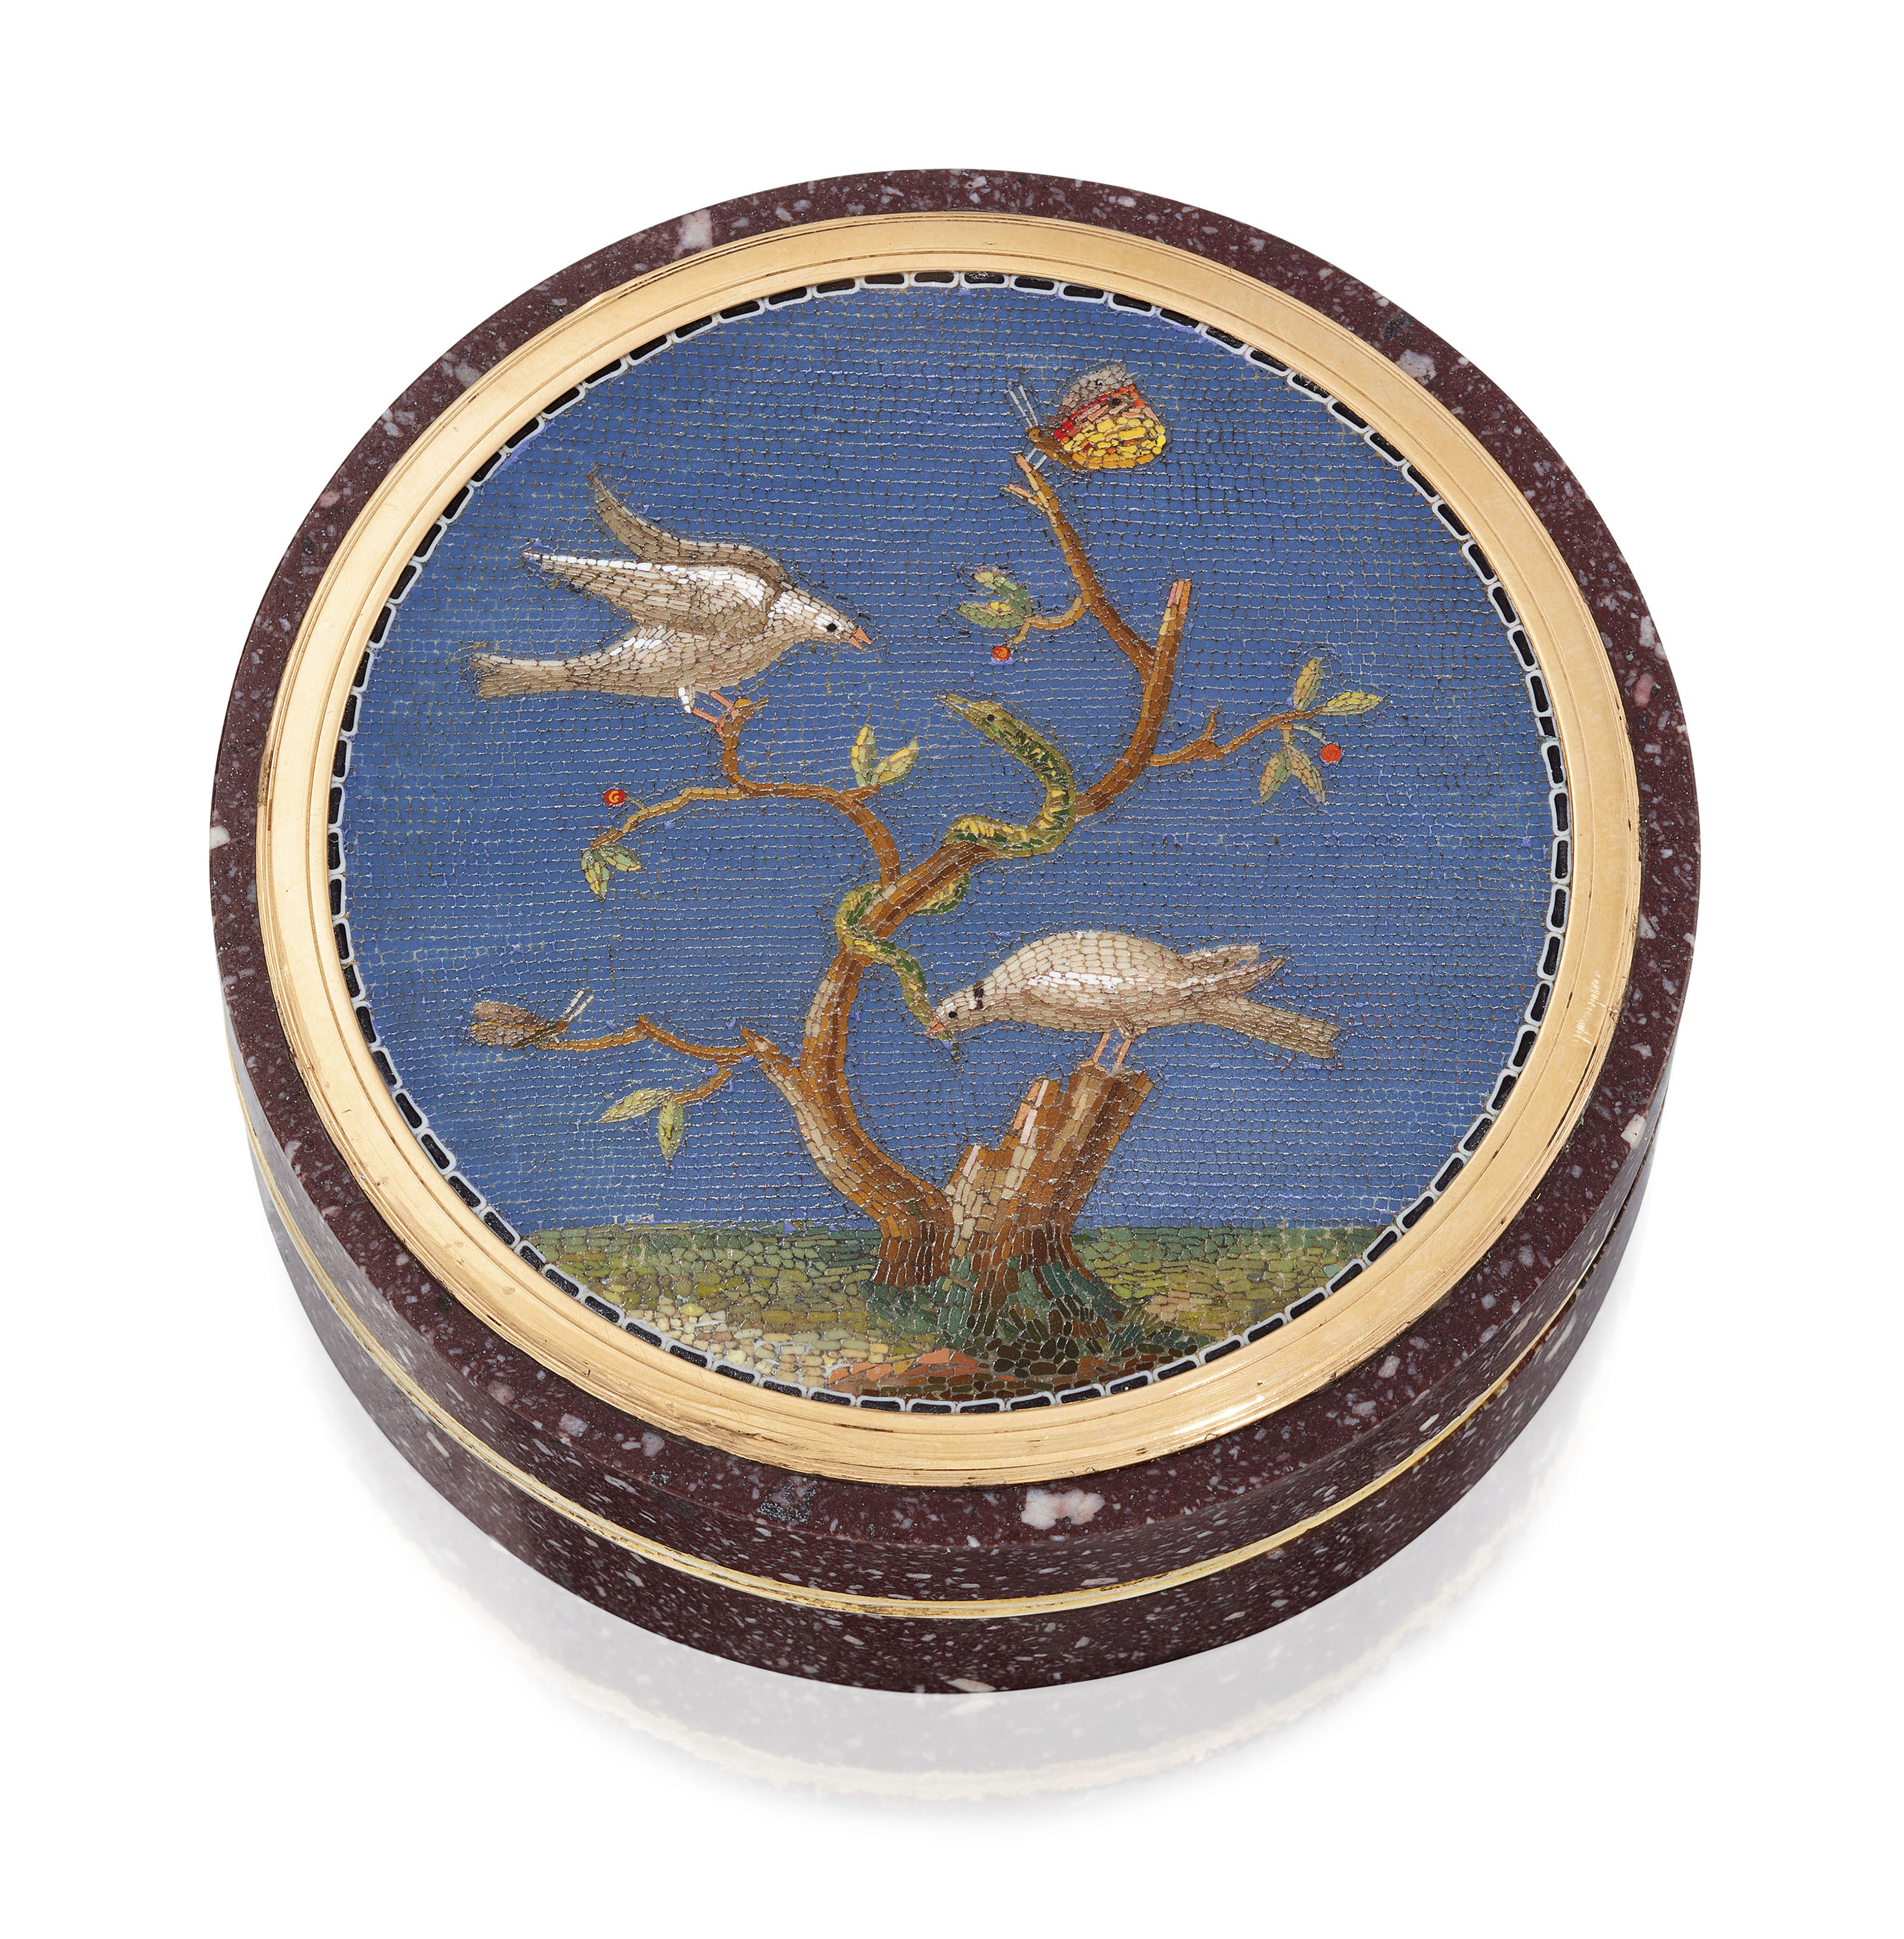 AN ITALIAN SILVER-GILT MOUNTED HARDSTONE BONBONNIÈRE SET WITH A MICROMOSAIC PLAQUE